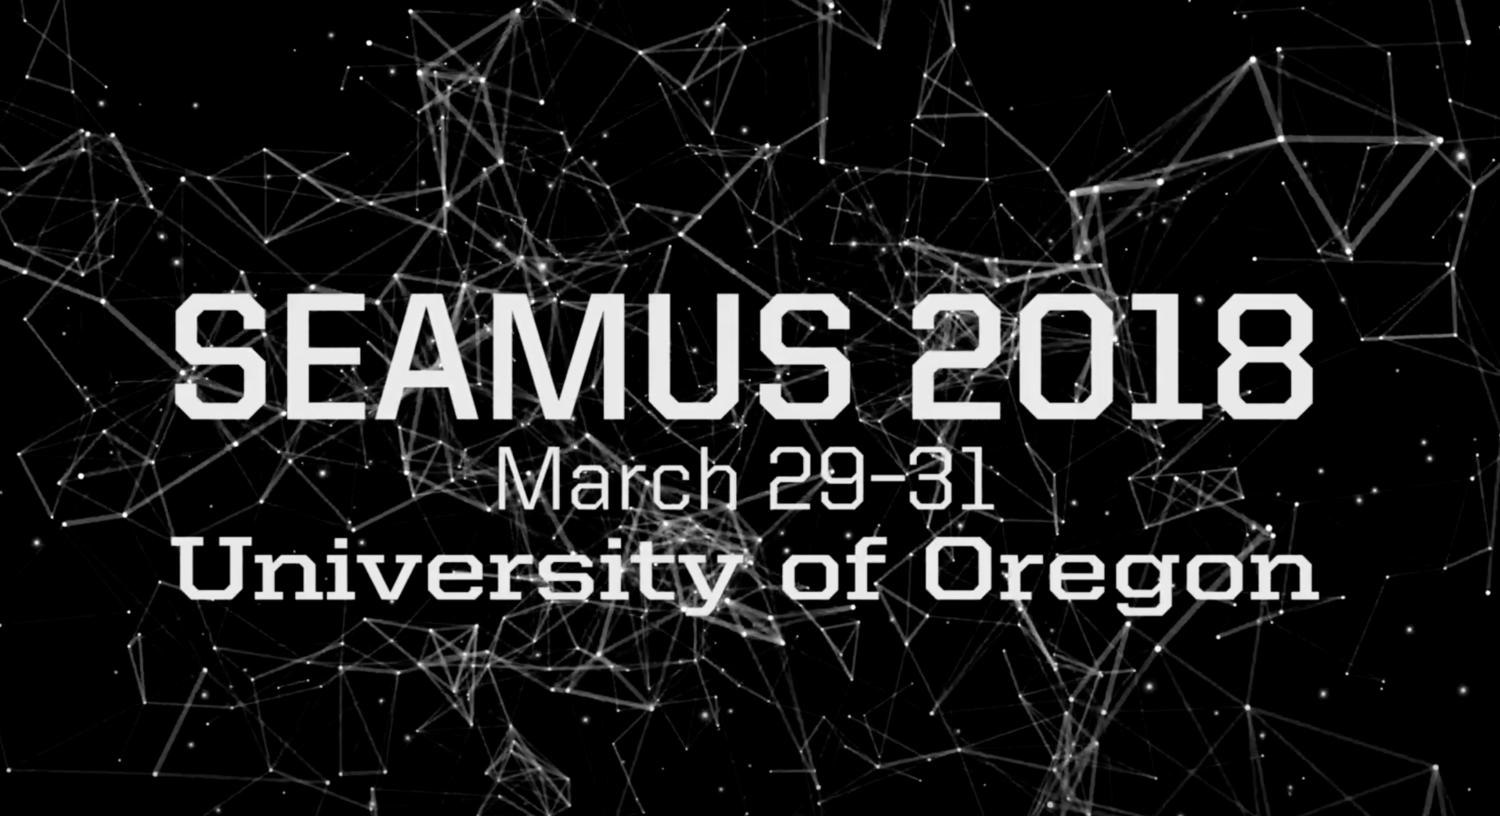 March 29-31 SEAMUS 2018 at the University of Oregon - Performance of Medical Text p.57 with  Lucas Marshall Smith